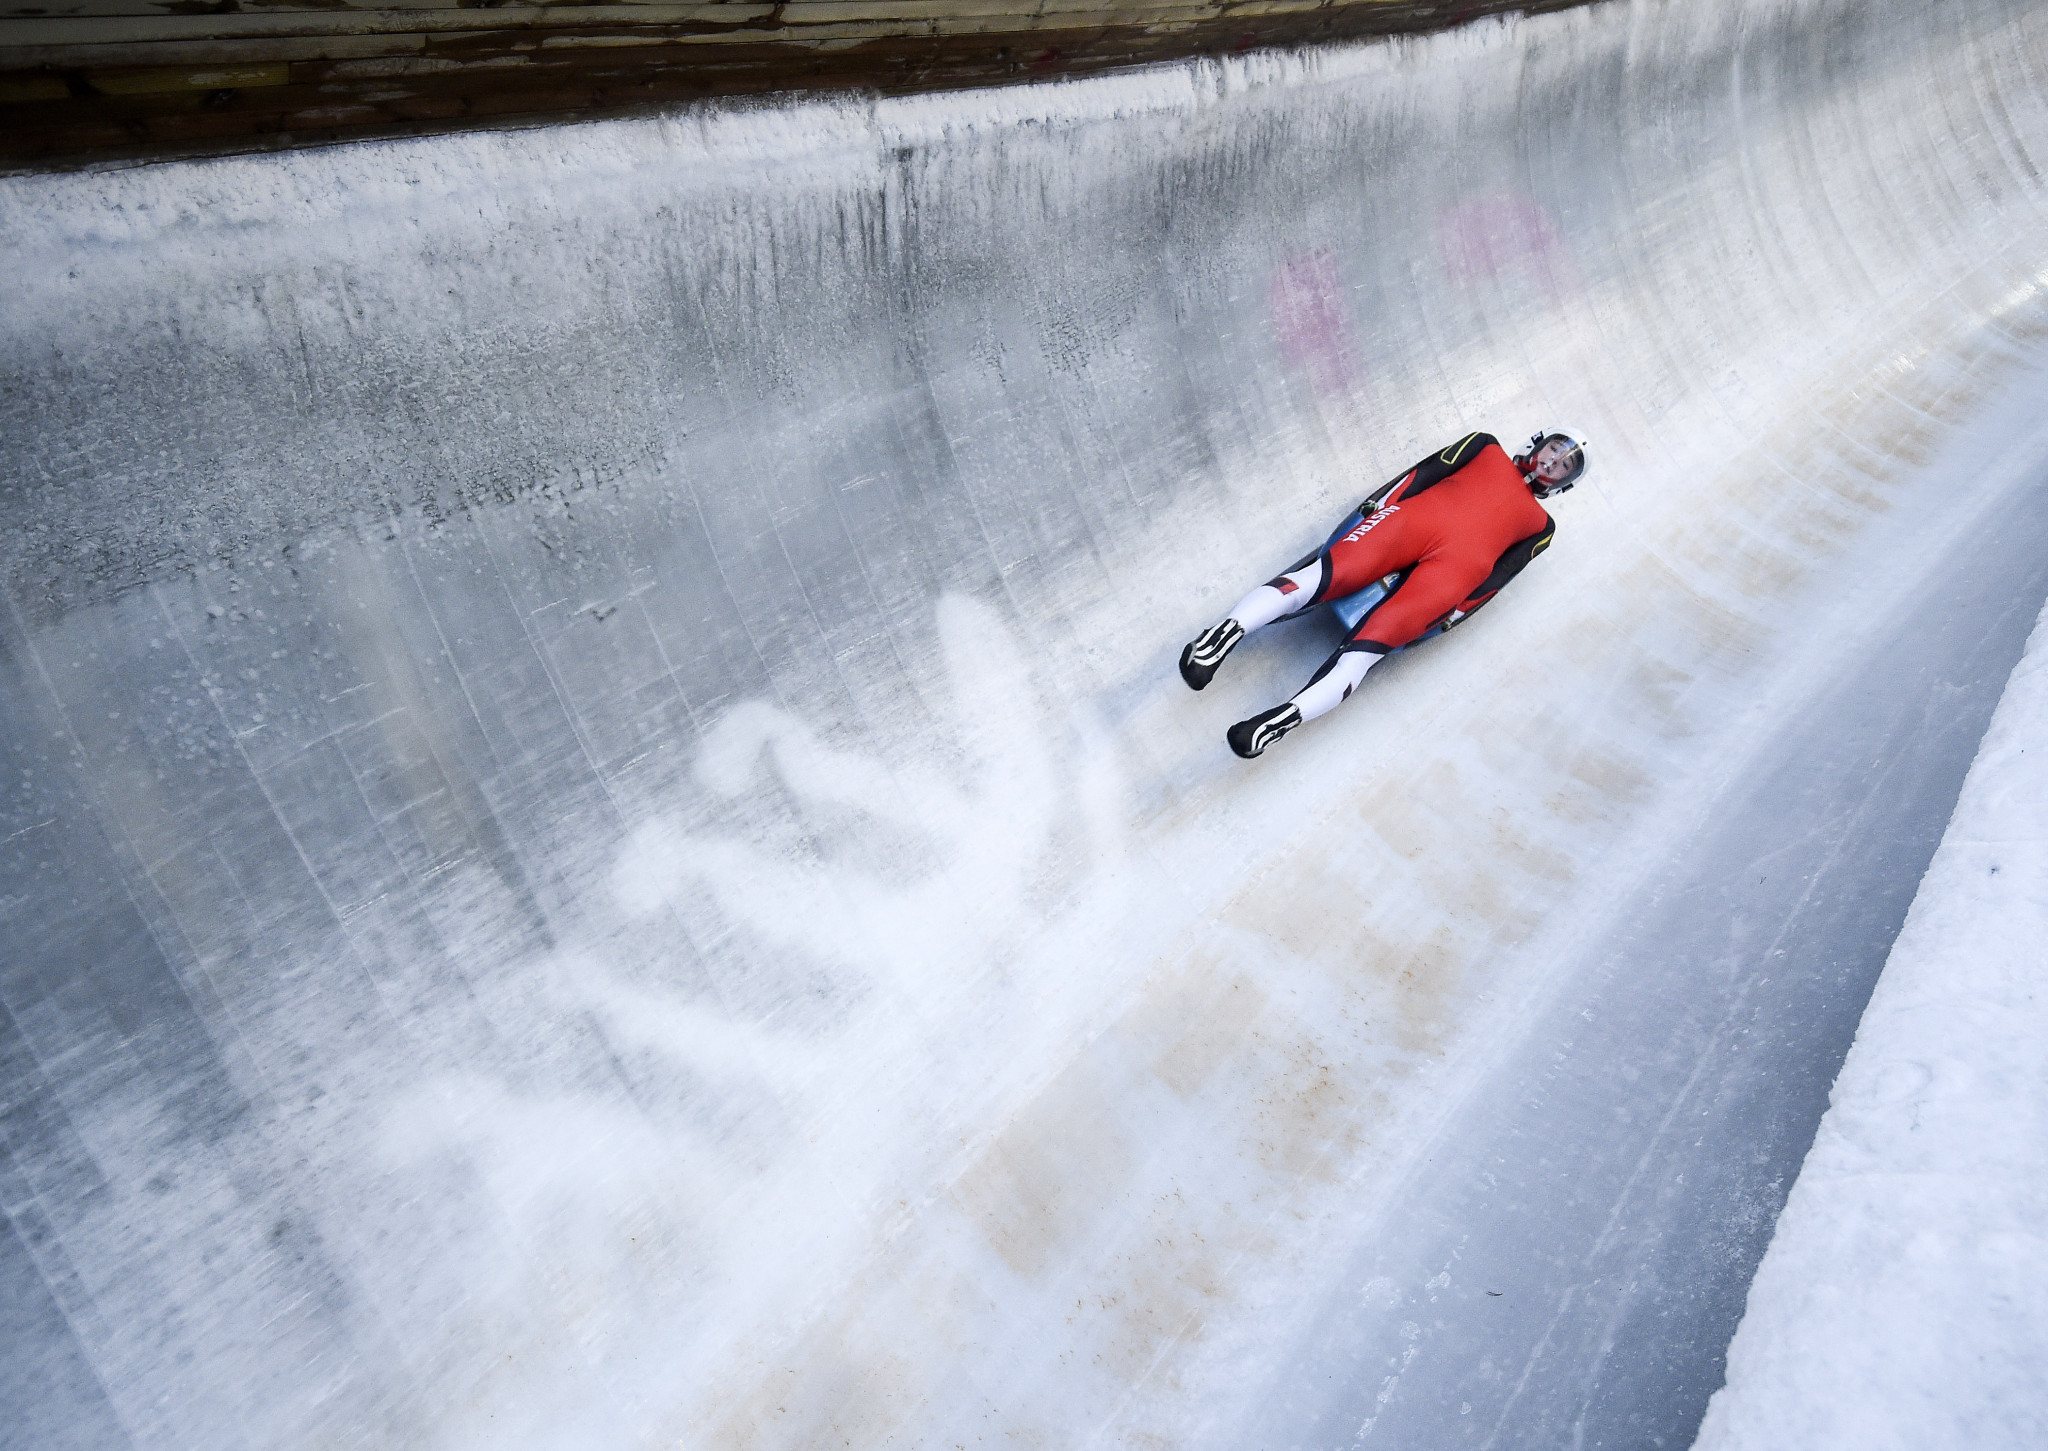 Madeline Egle sliding in practice at the Lillehammer 2016 Winter Youth Olympics ©Getty Images